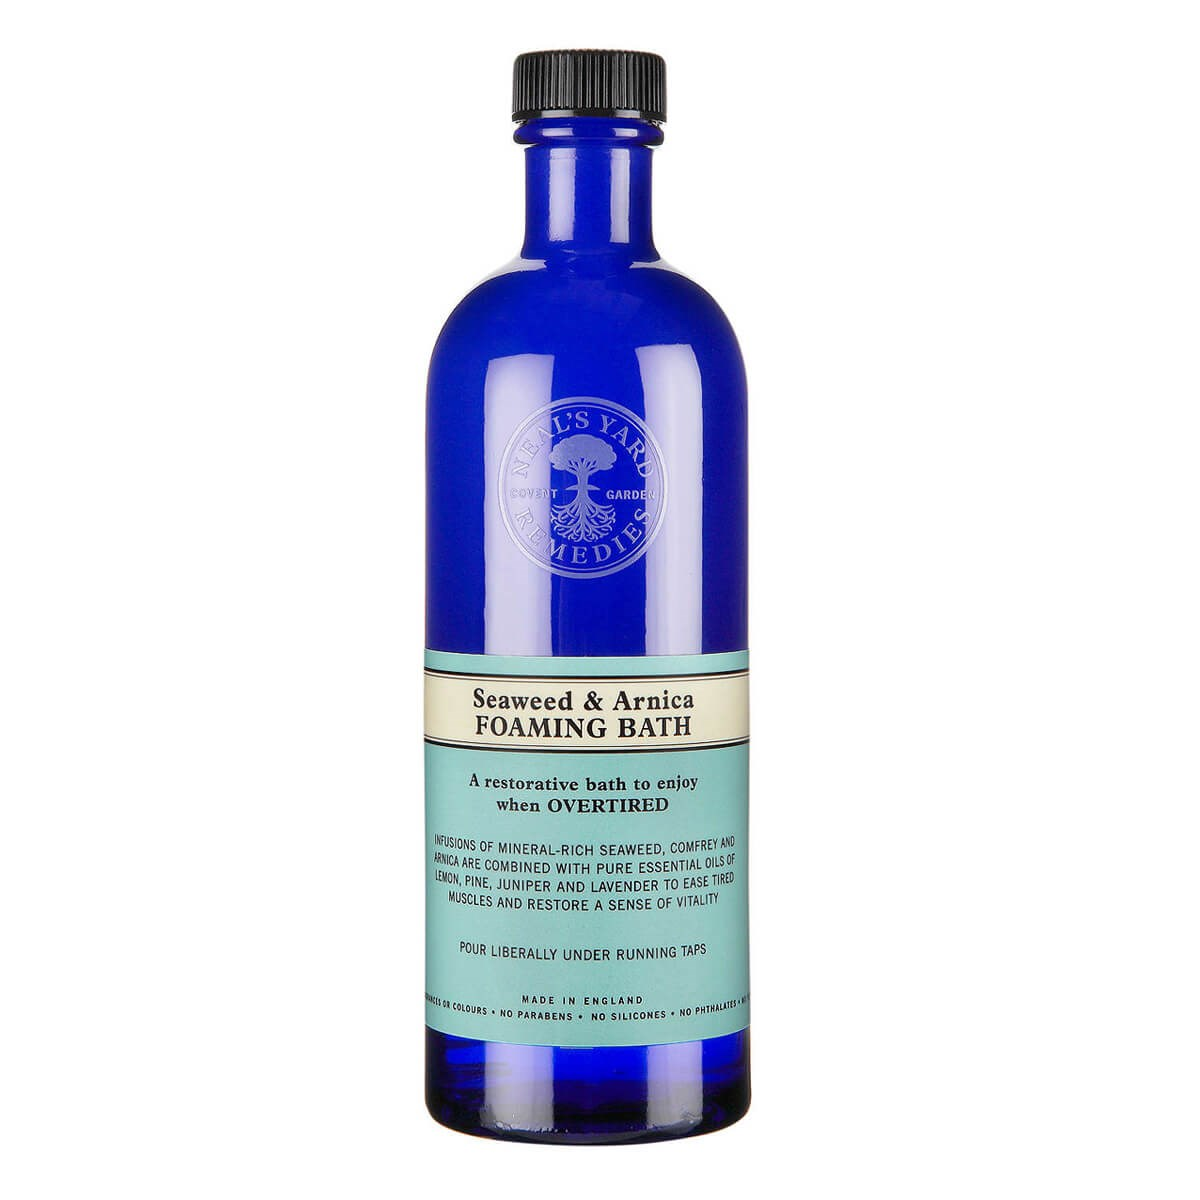 Neal's Yard Remedies Seaweed & Arnica Foaming Bath